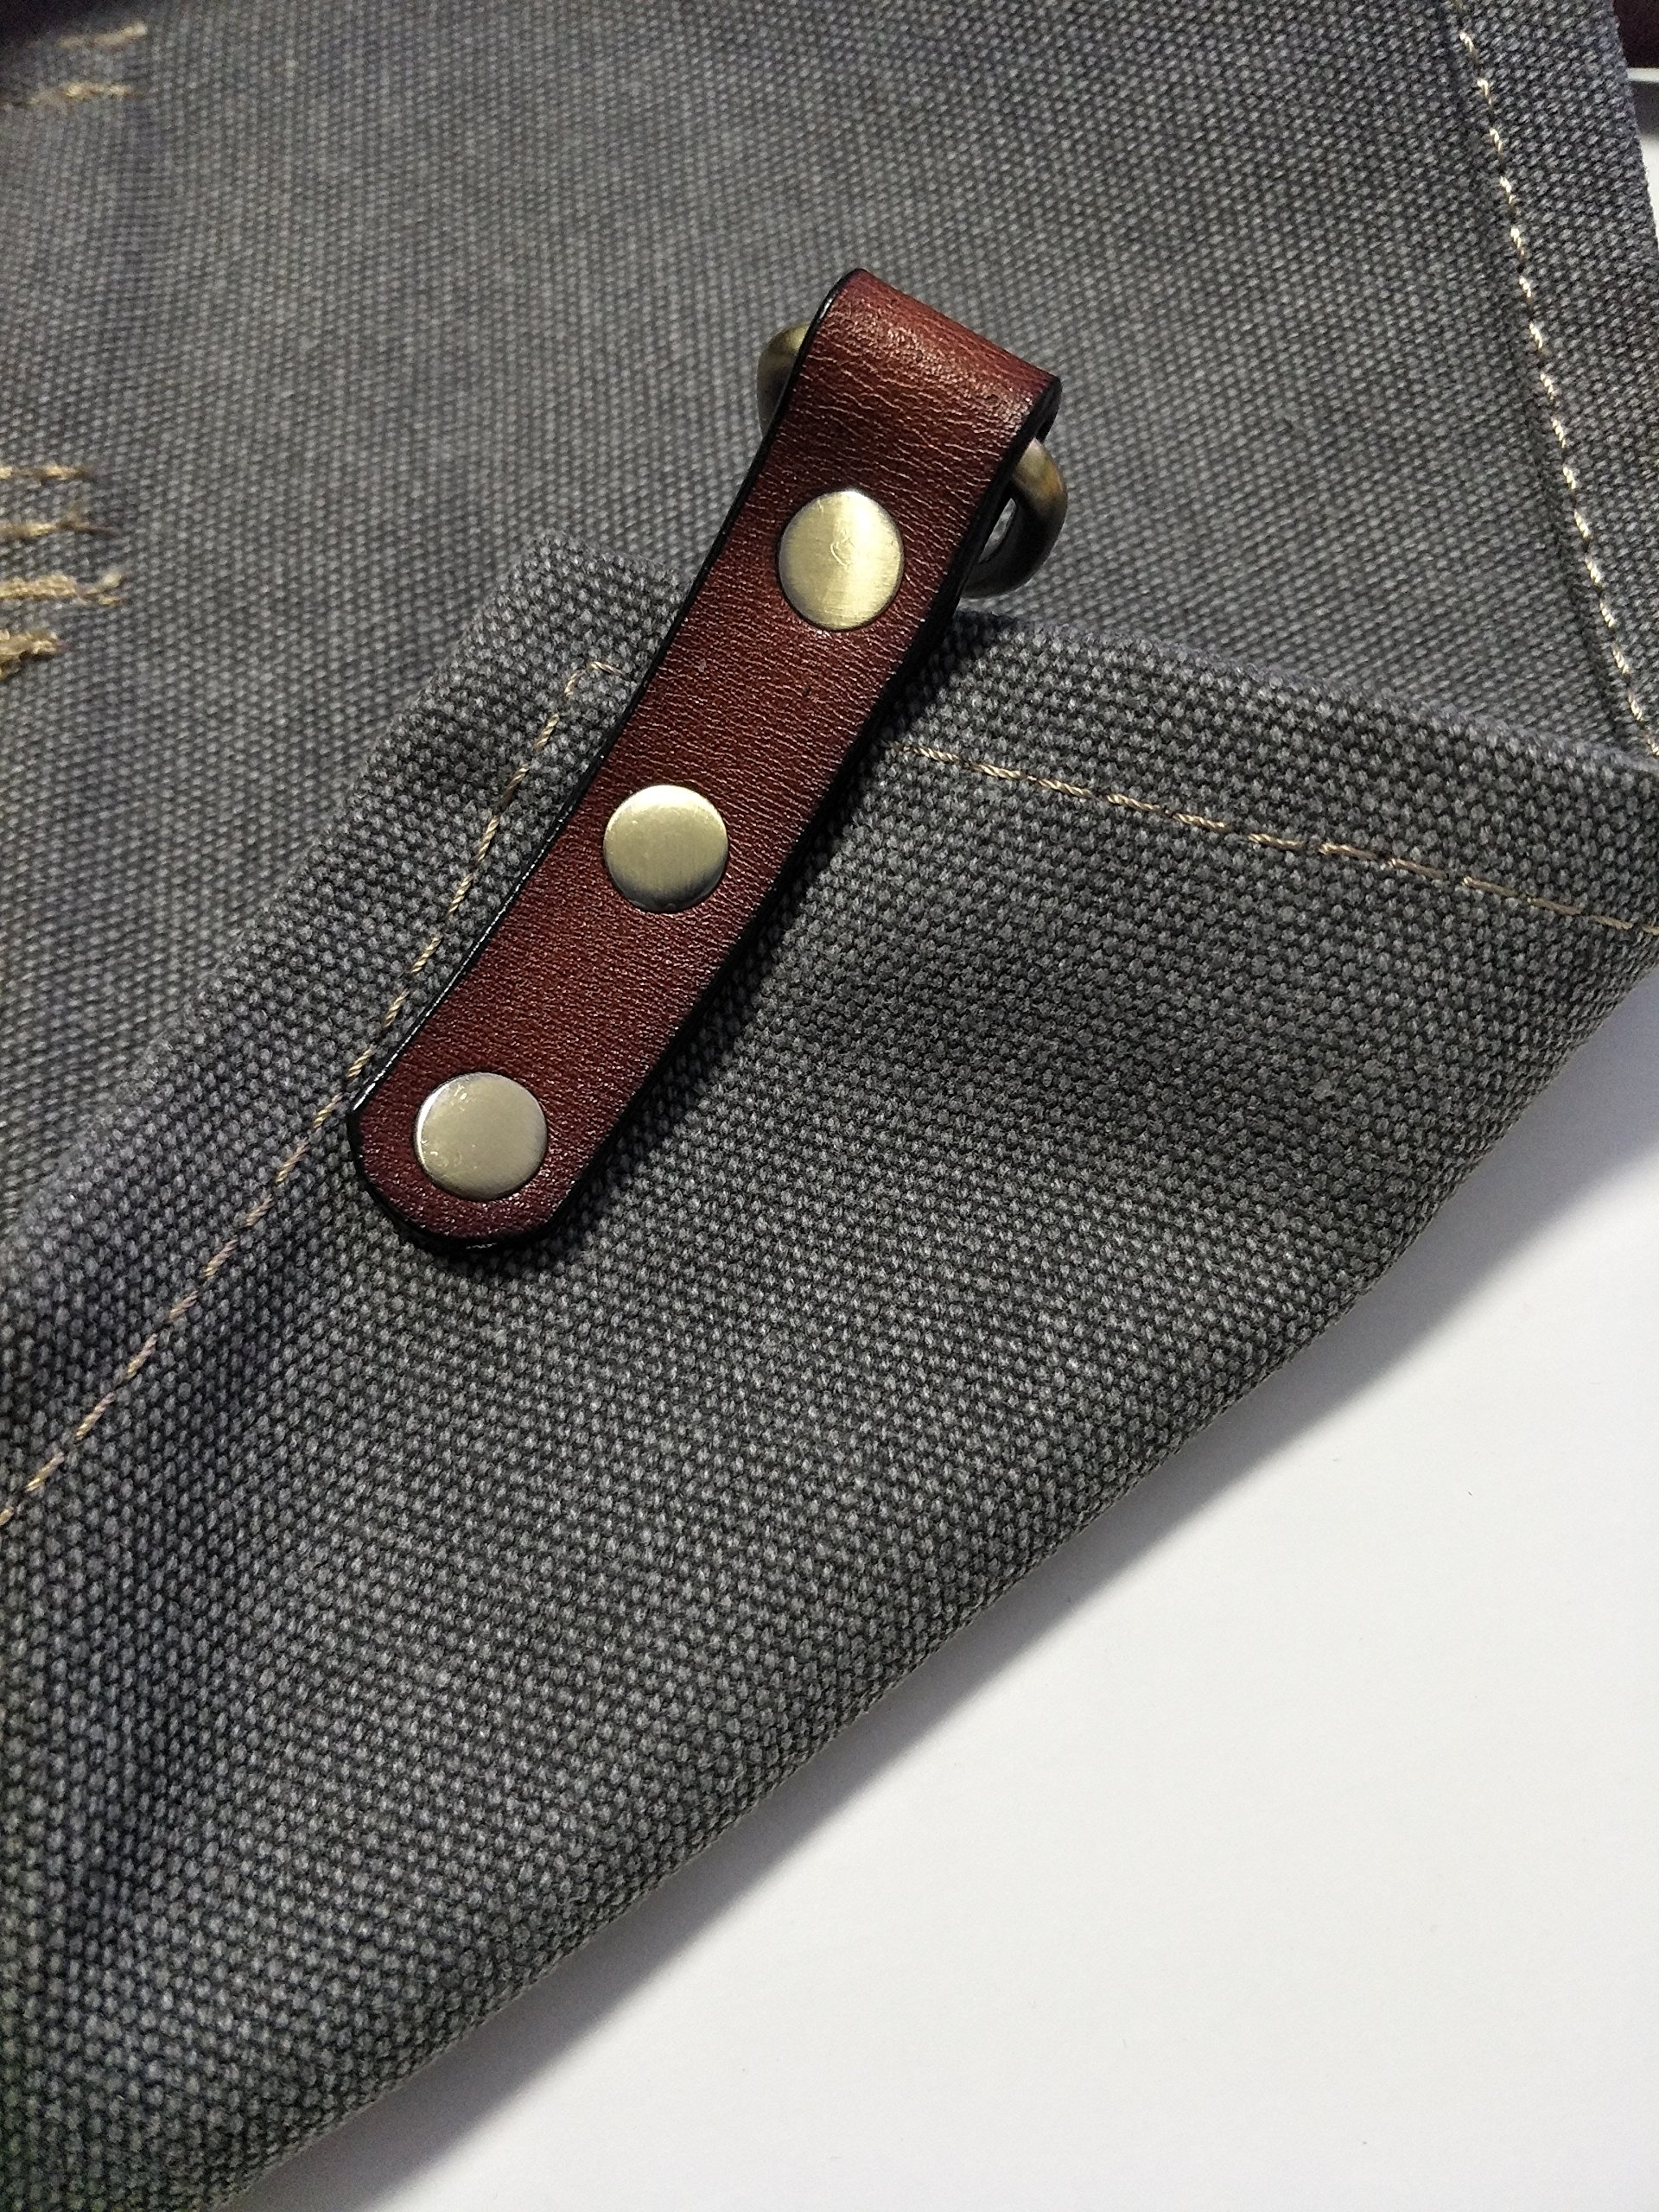 Heavy Duty Gray Waxed Canvas Work Apron With Pockets For Man (31 by 23.62inch)